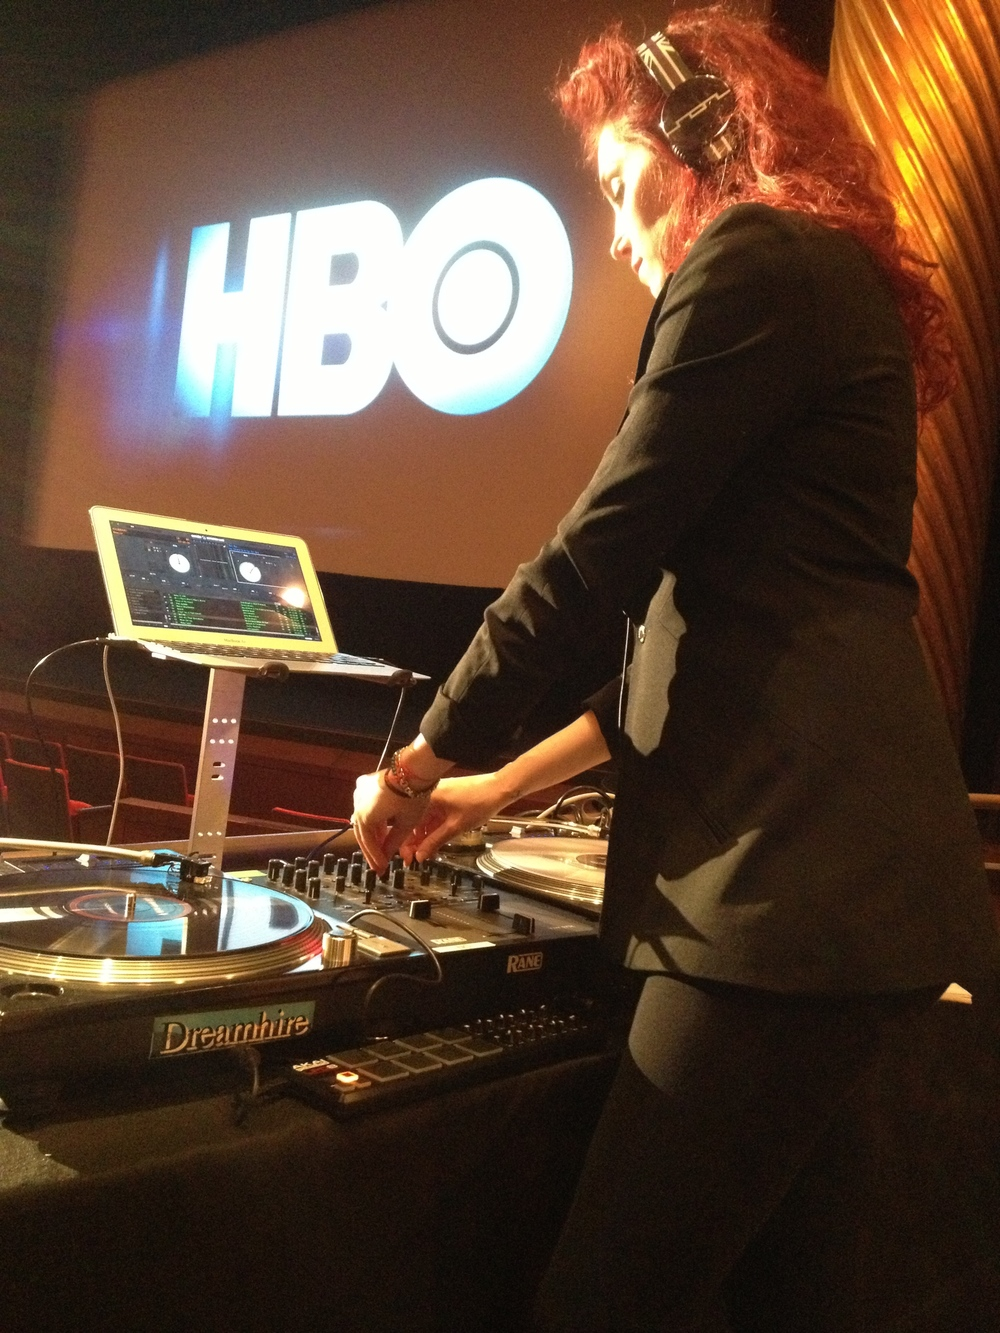 HBO's The Leftovers Premiere and party